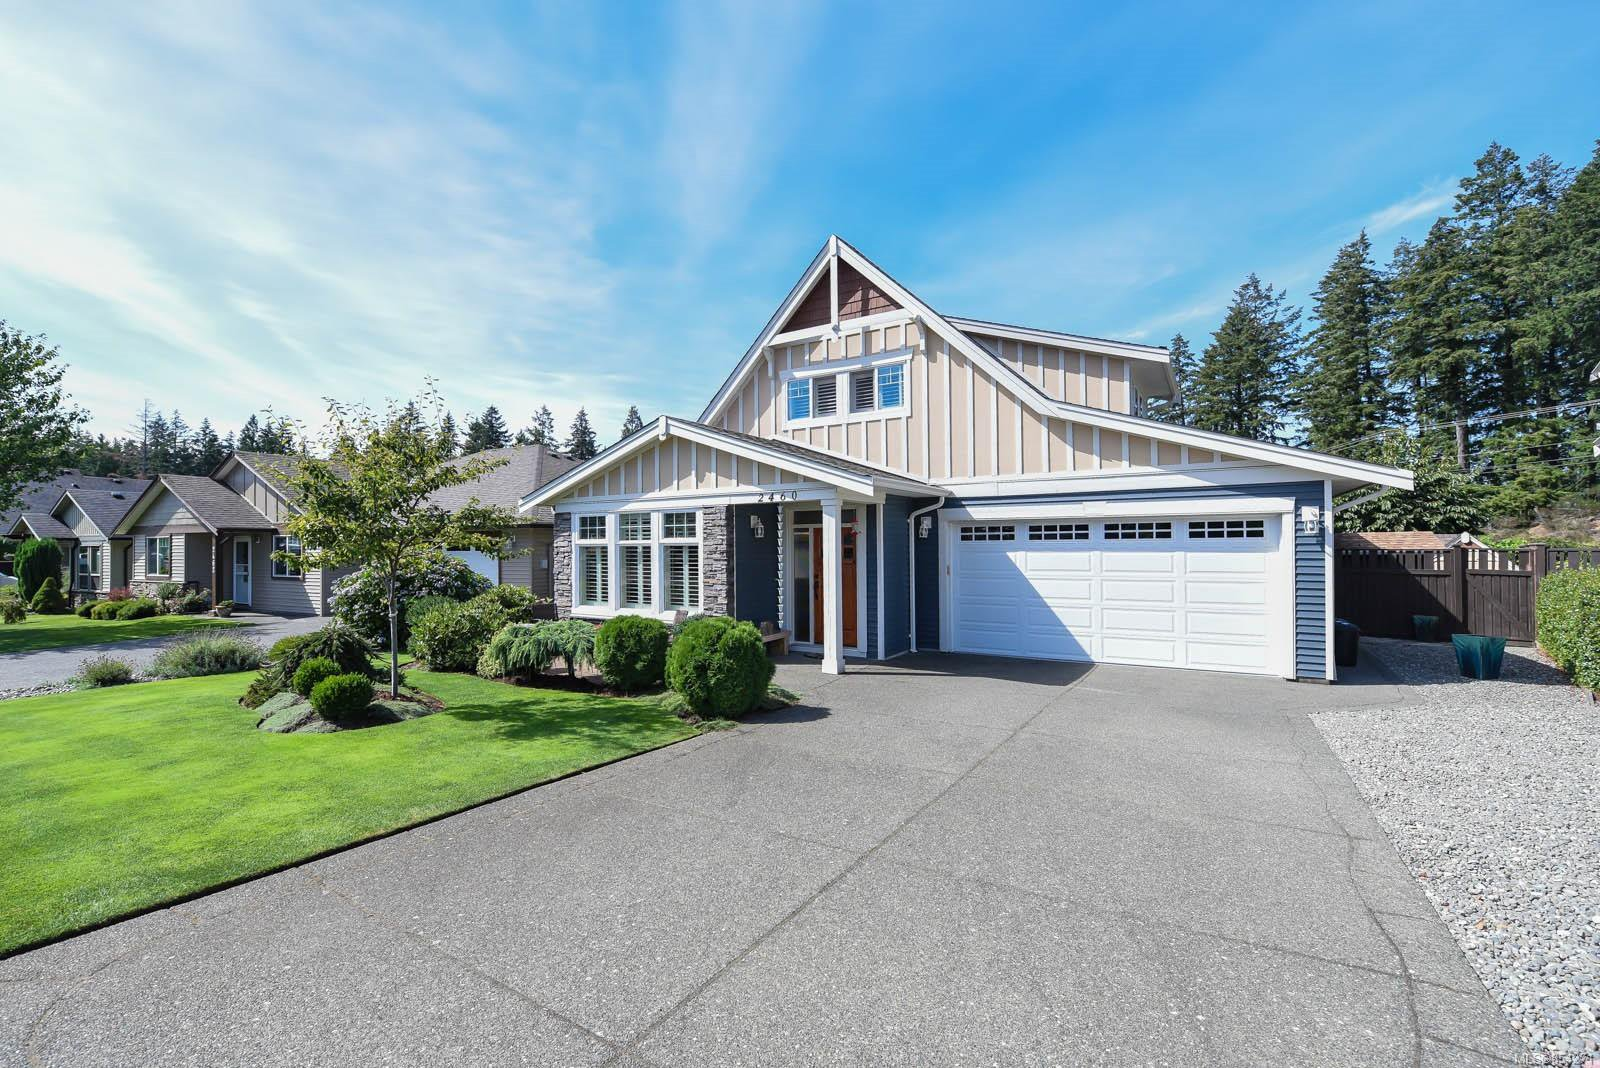 Main Photo: 2460 Avro Arrow Dr in : CV Comox (Town of) House for sale (Comox Valley)  : MLS®# 854271